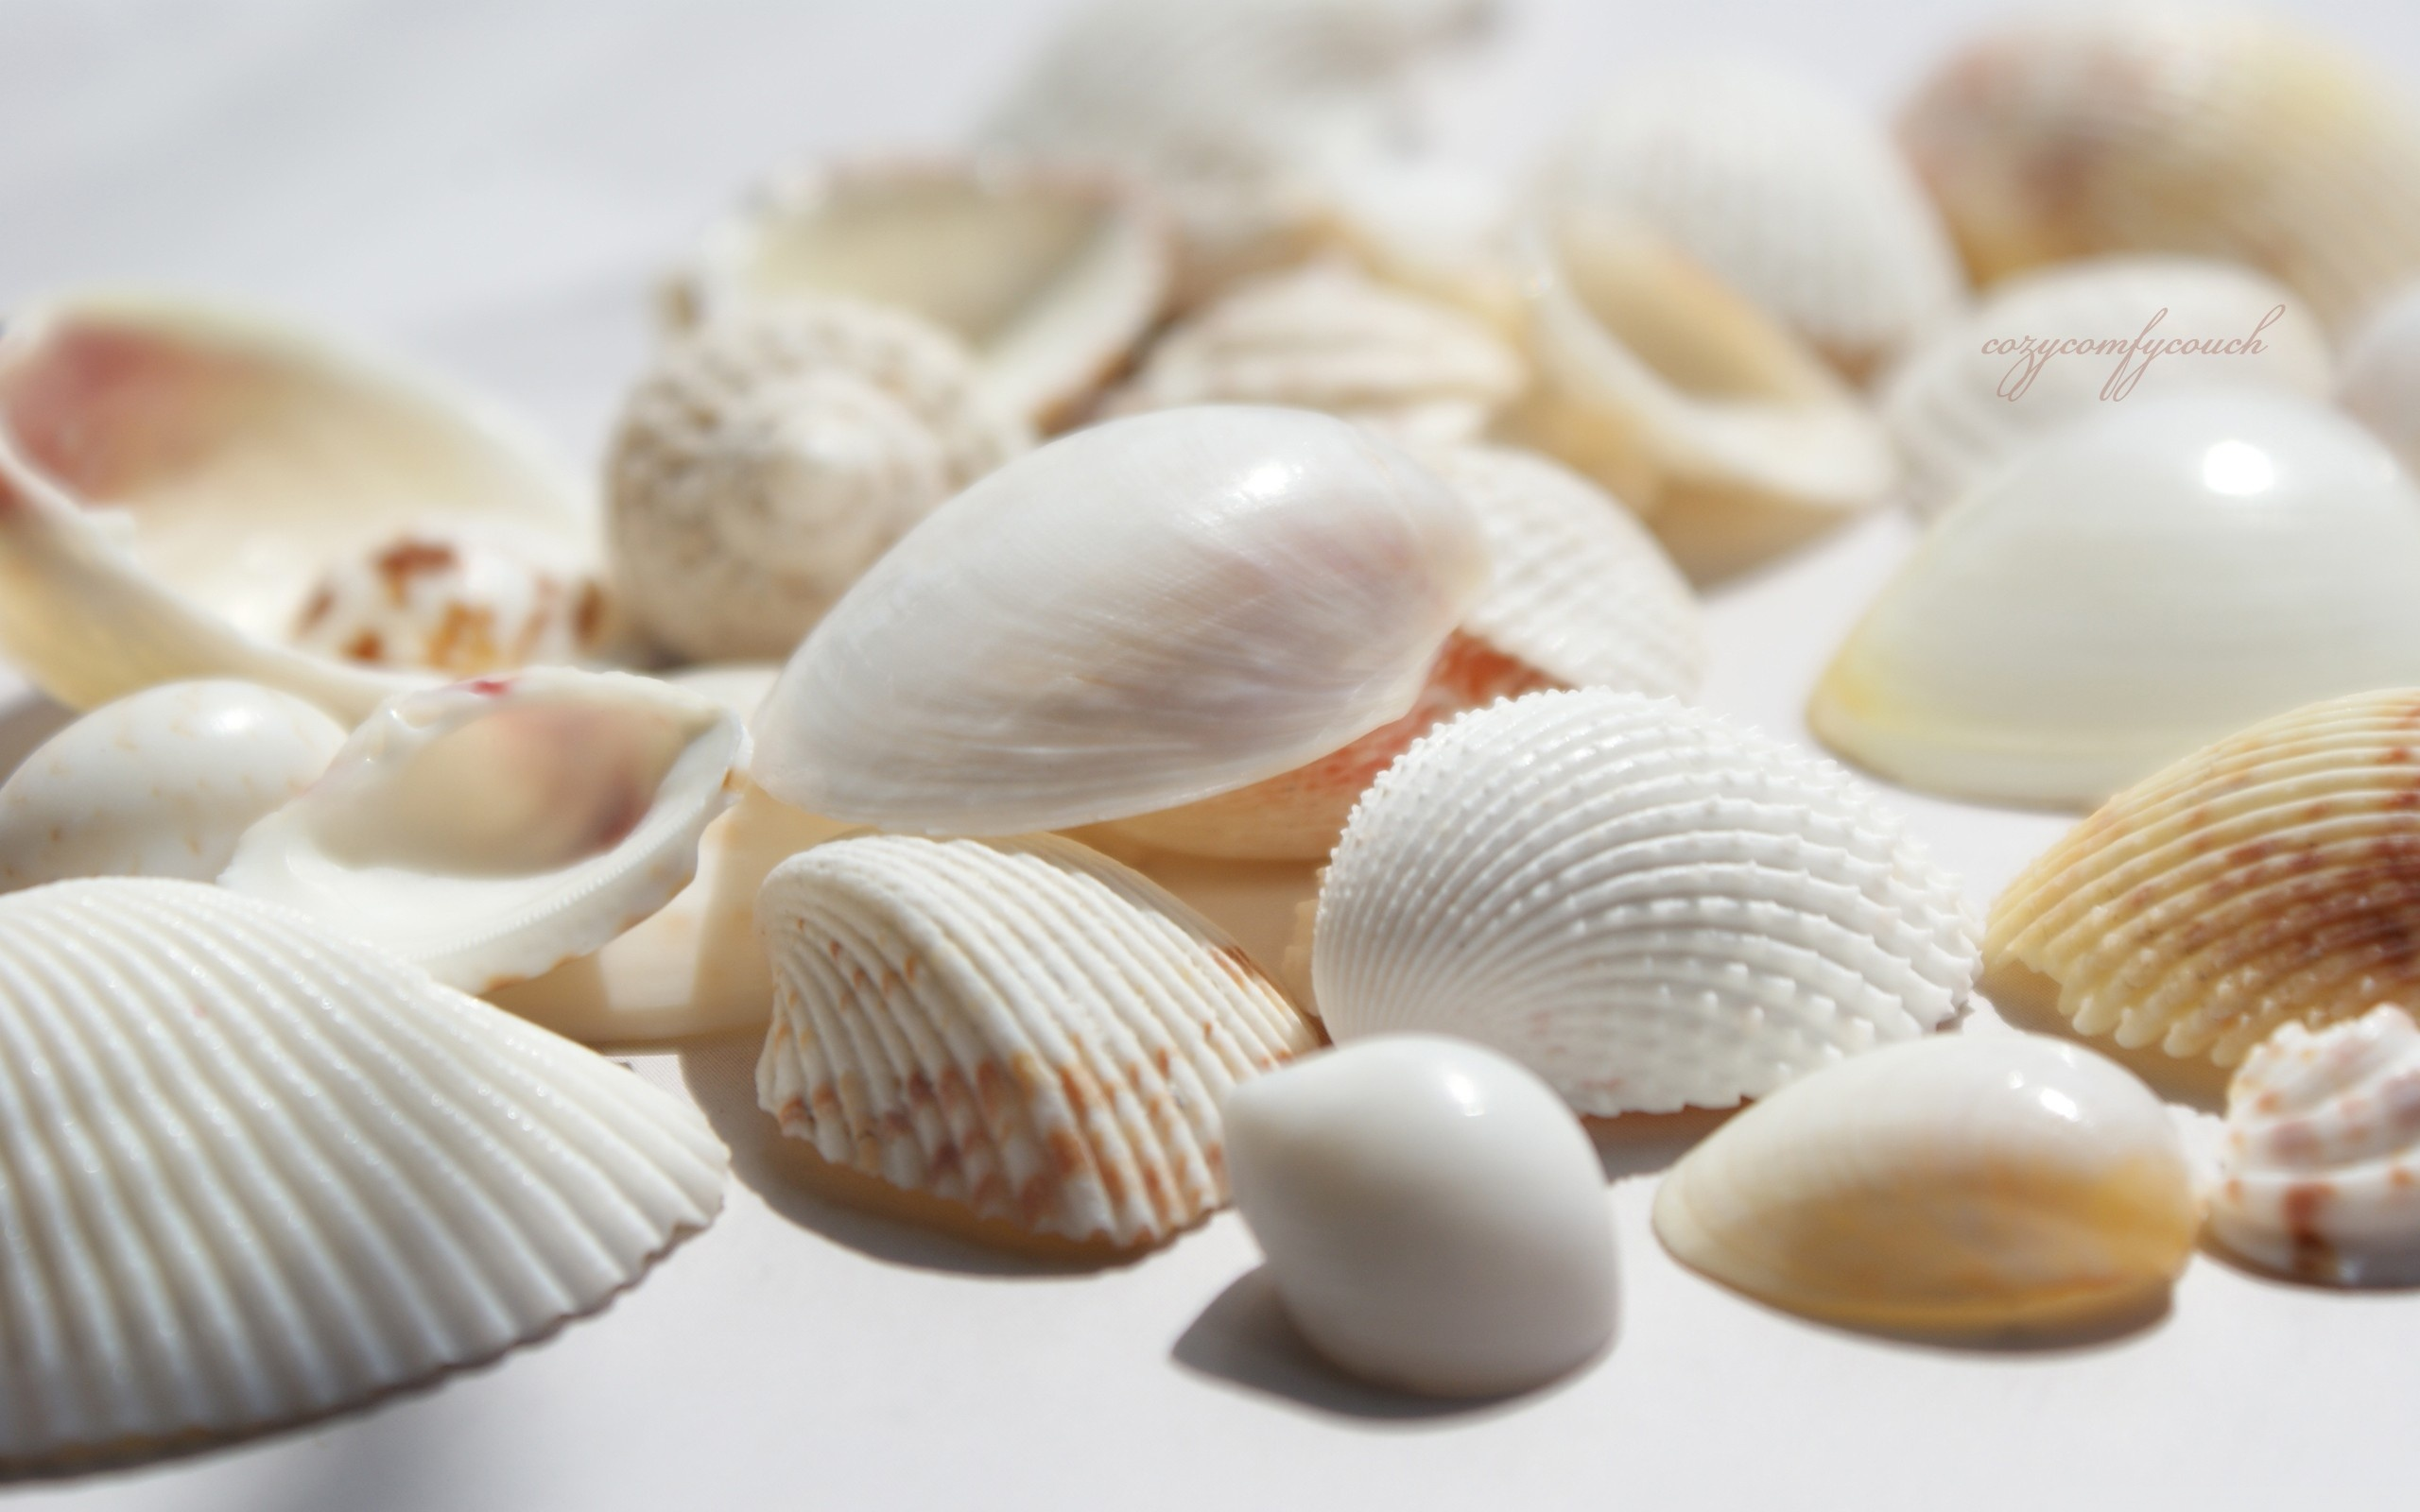 Seashells 4K HD Desktop Wallpaper for 4K Ultra HD TV Dual 2560x1600